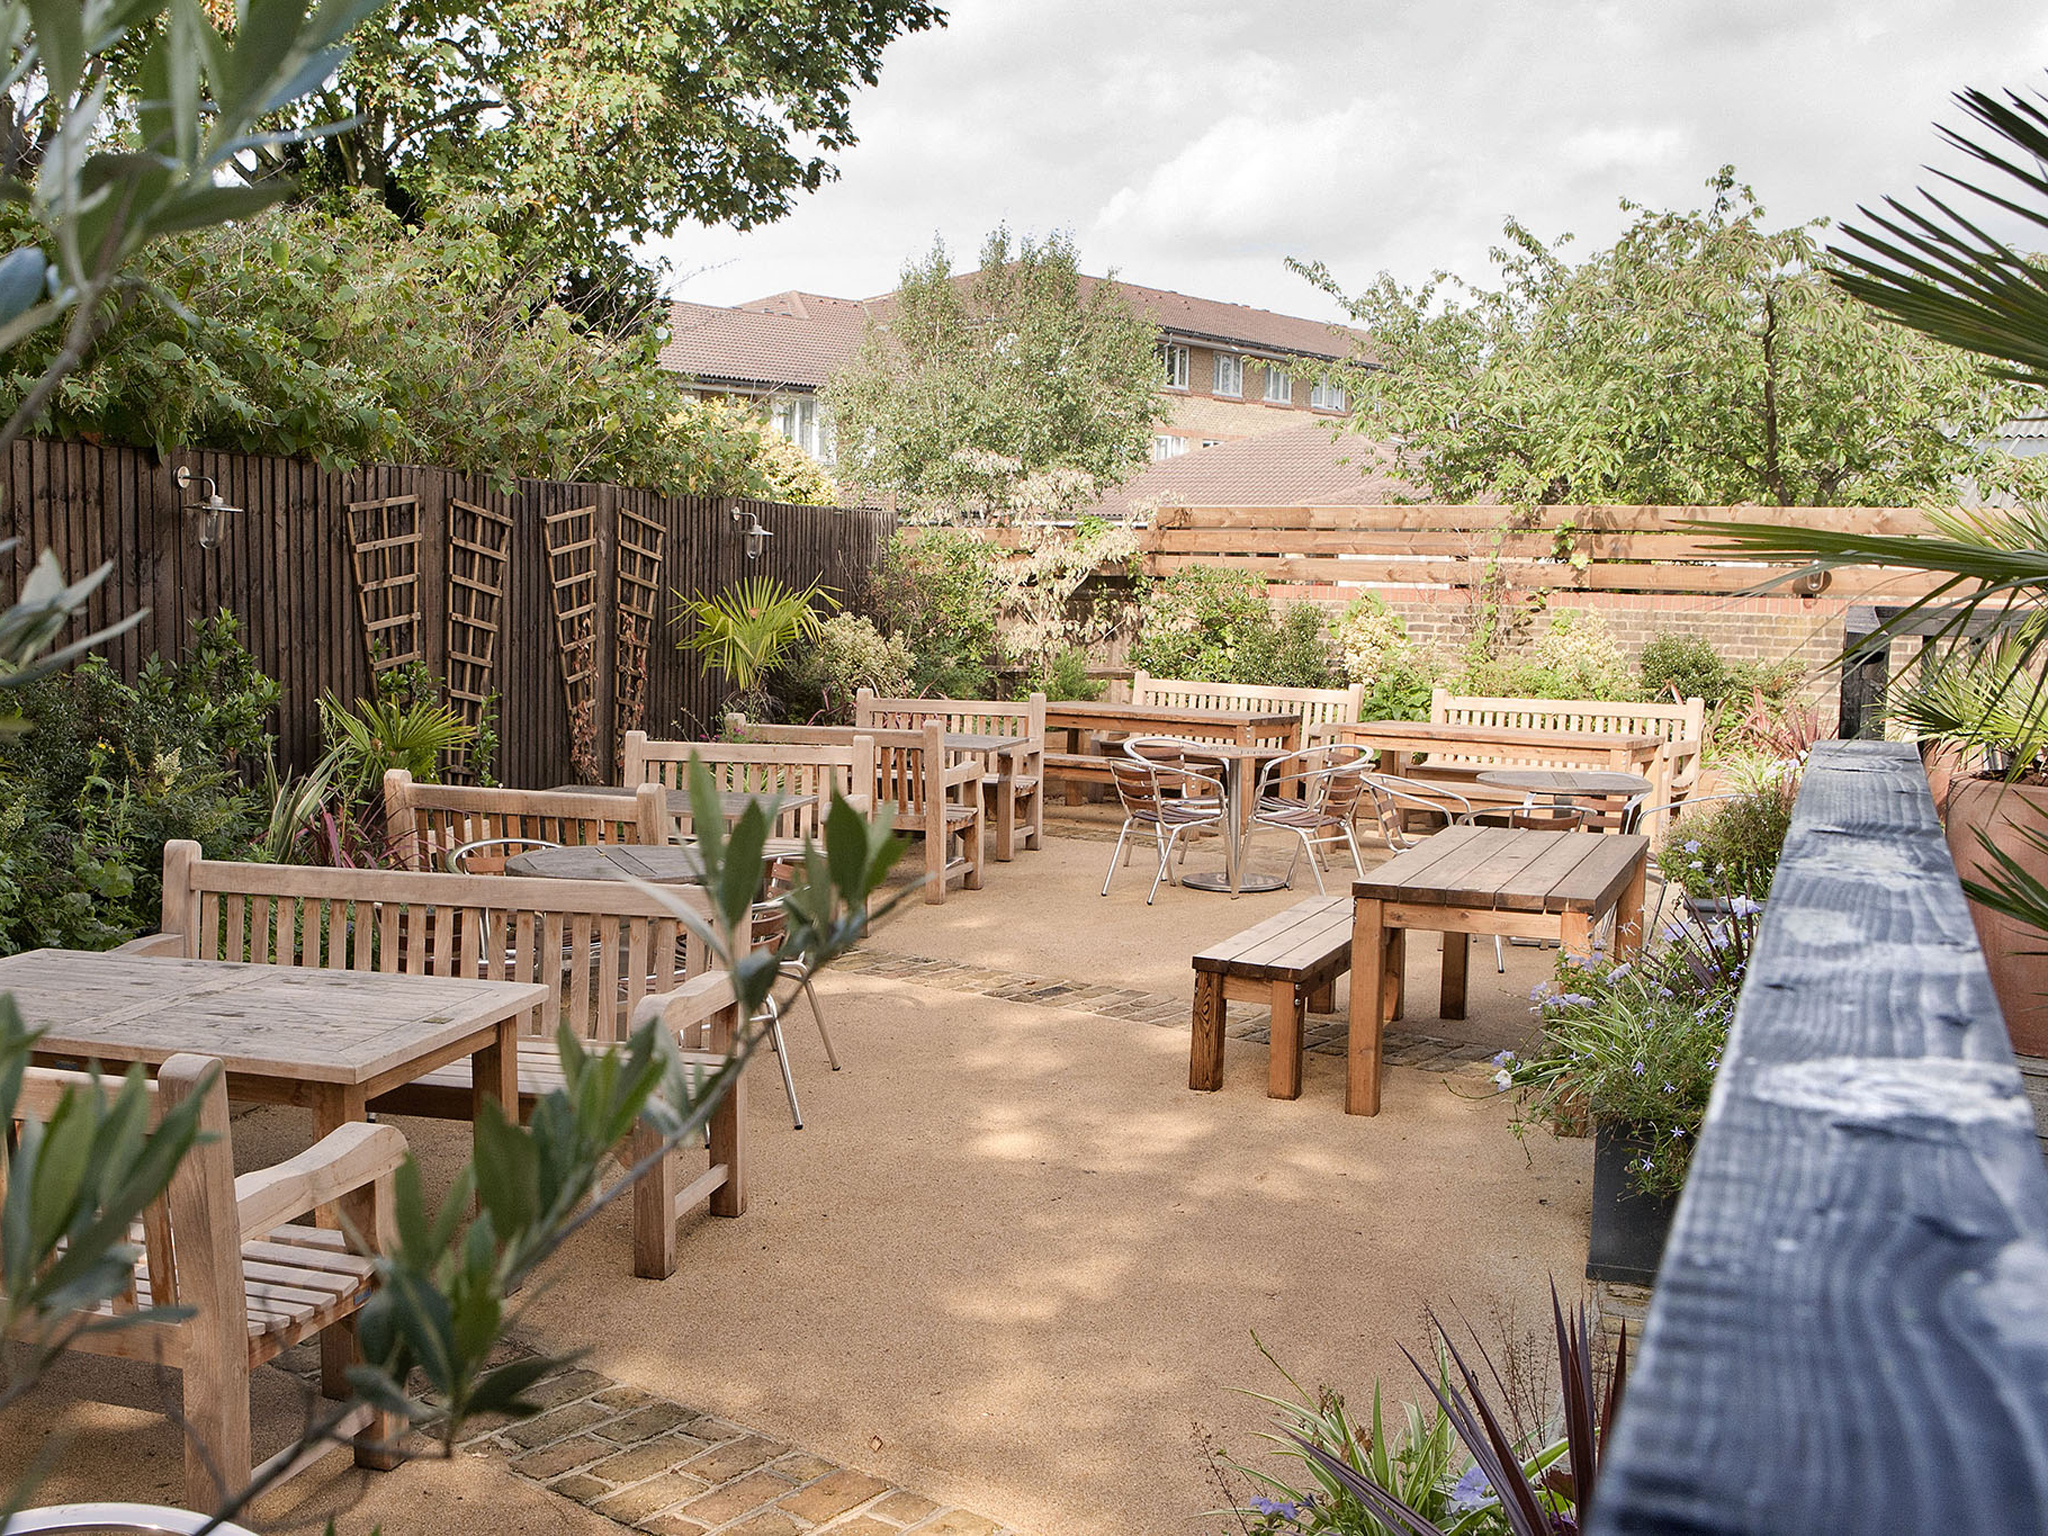 London's best beer gardens, Rosendale